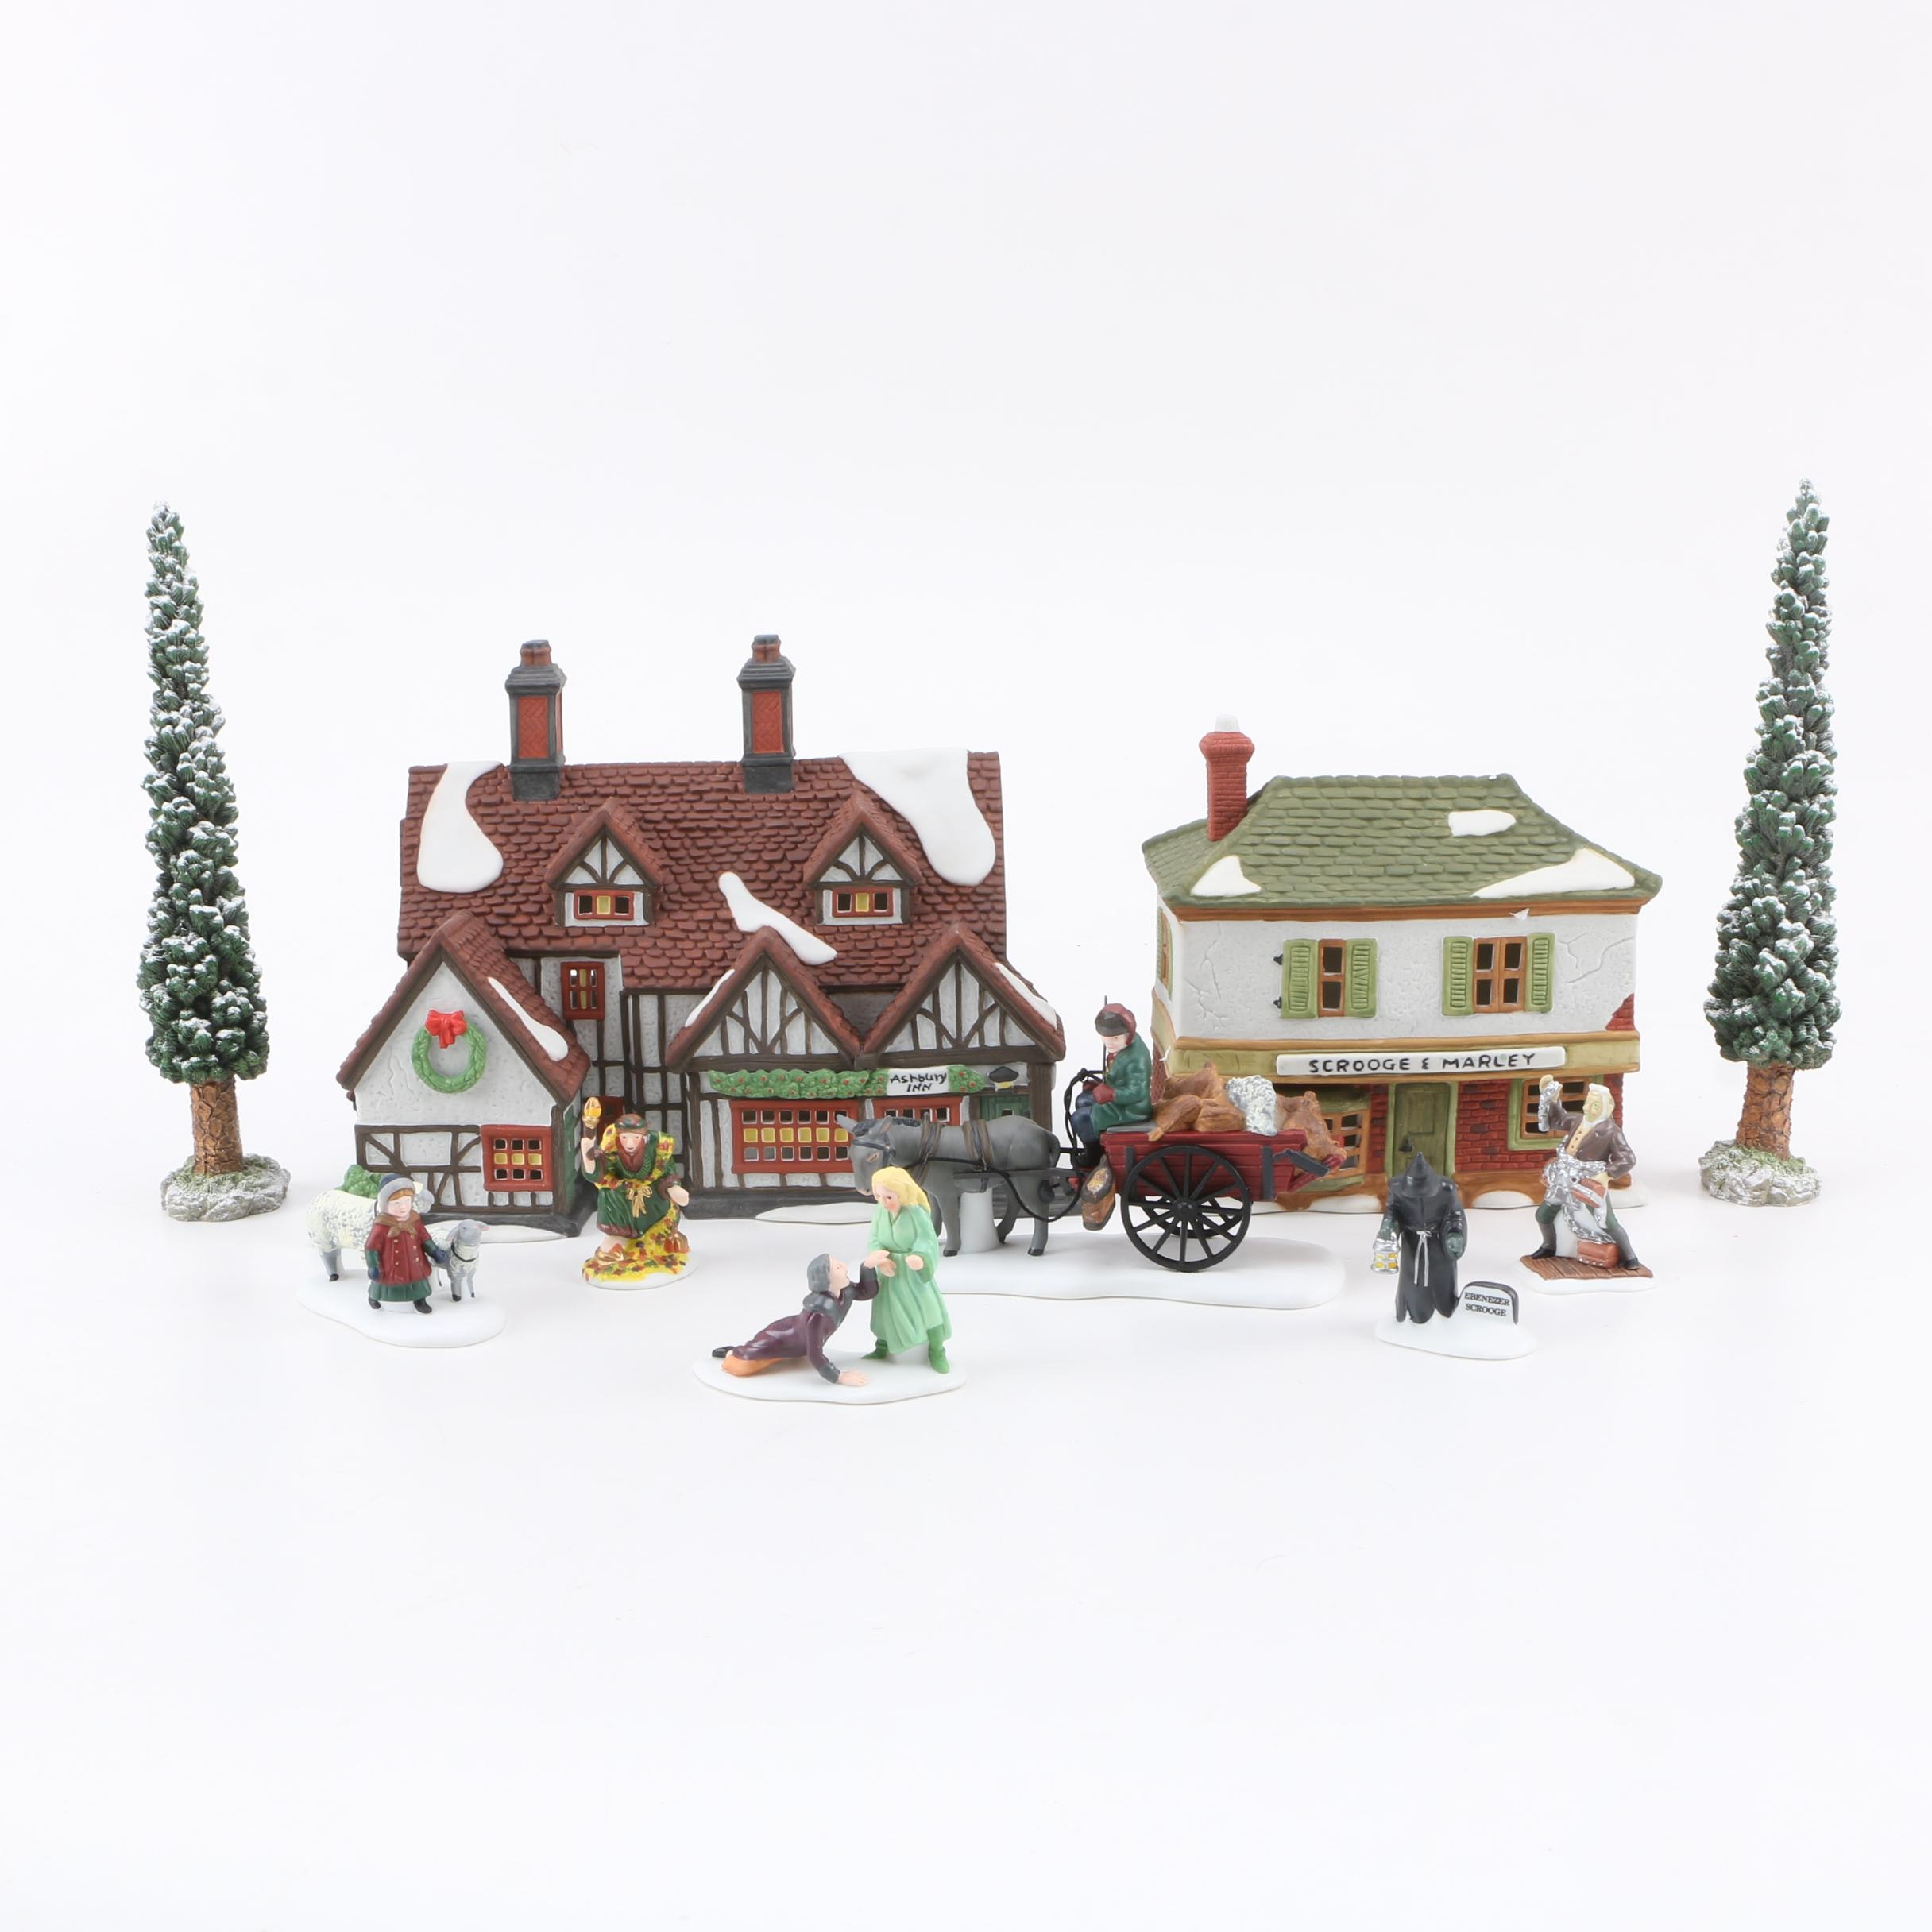 Department 56 Heritage Collection Dickens Village Buildings and Figurines